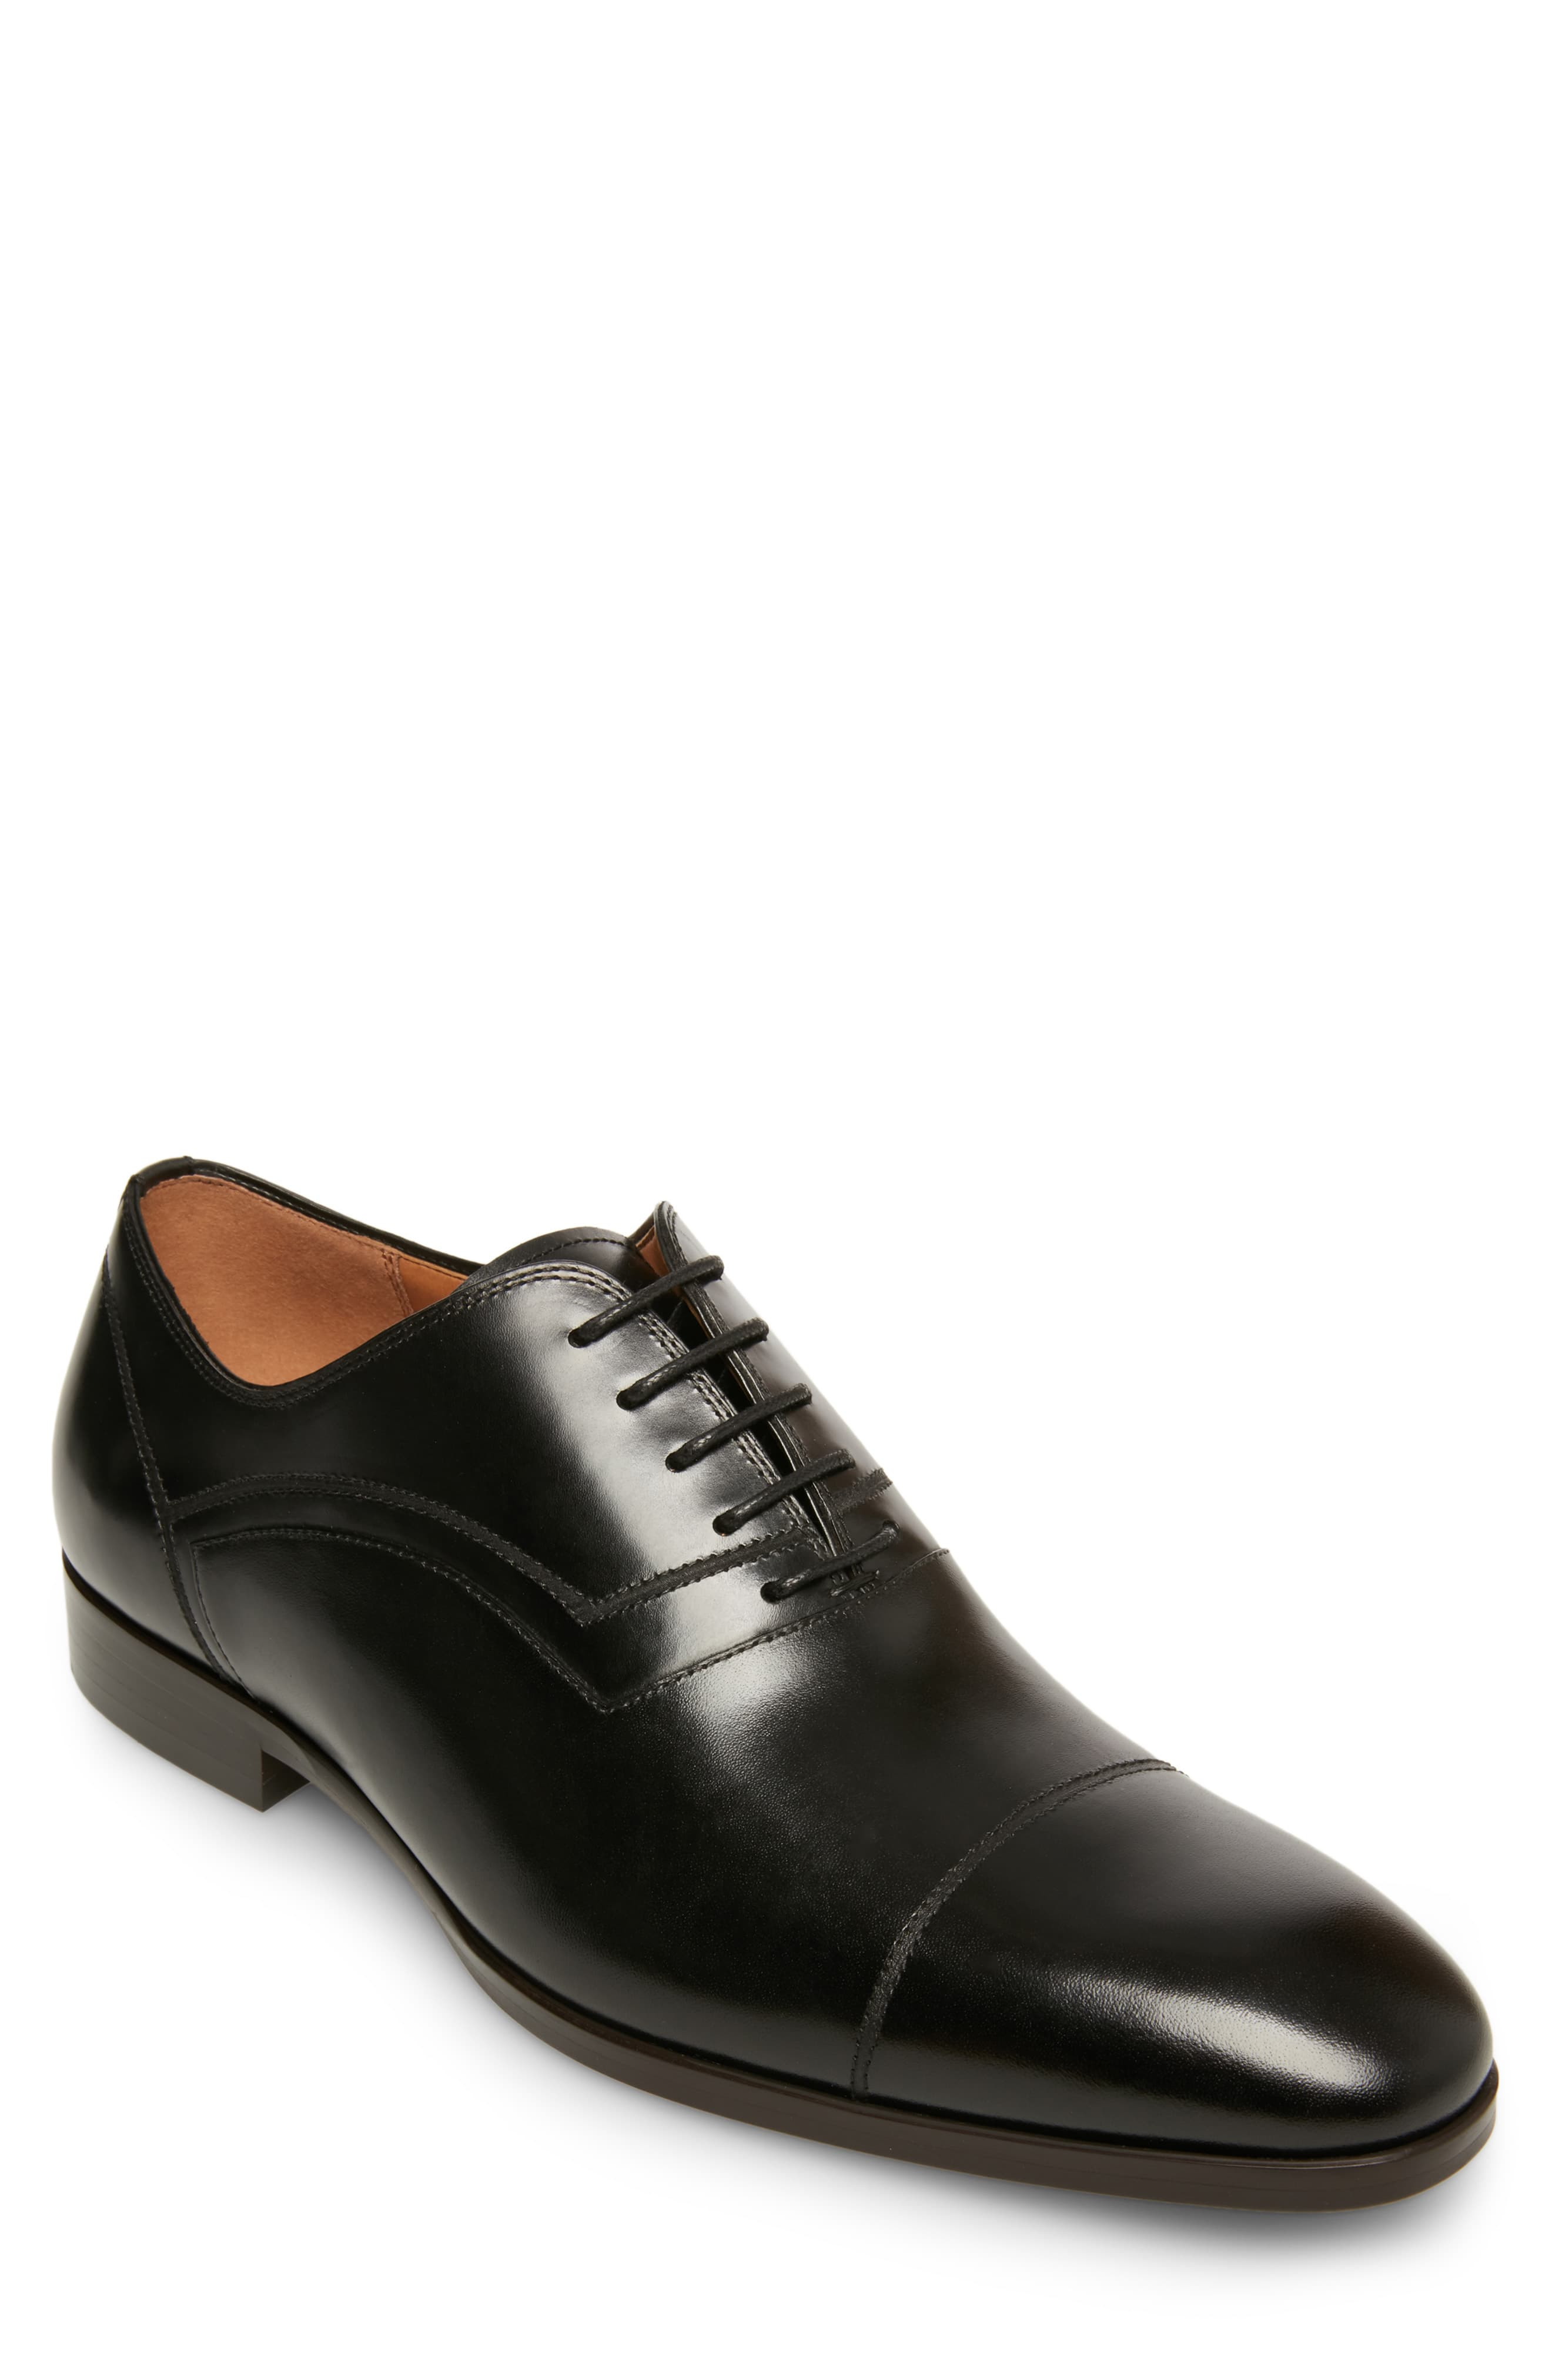 6325f6c9d38 Steve Madden Compass Cap Toe Oxford in 2019 | Products | Oxford ...